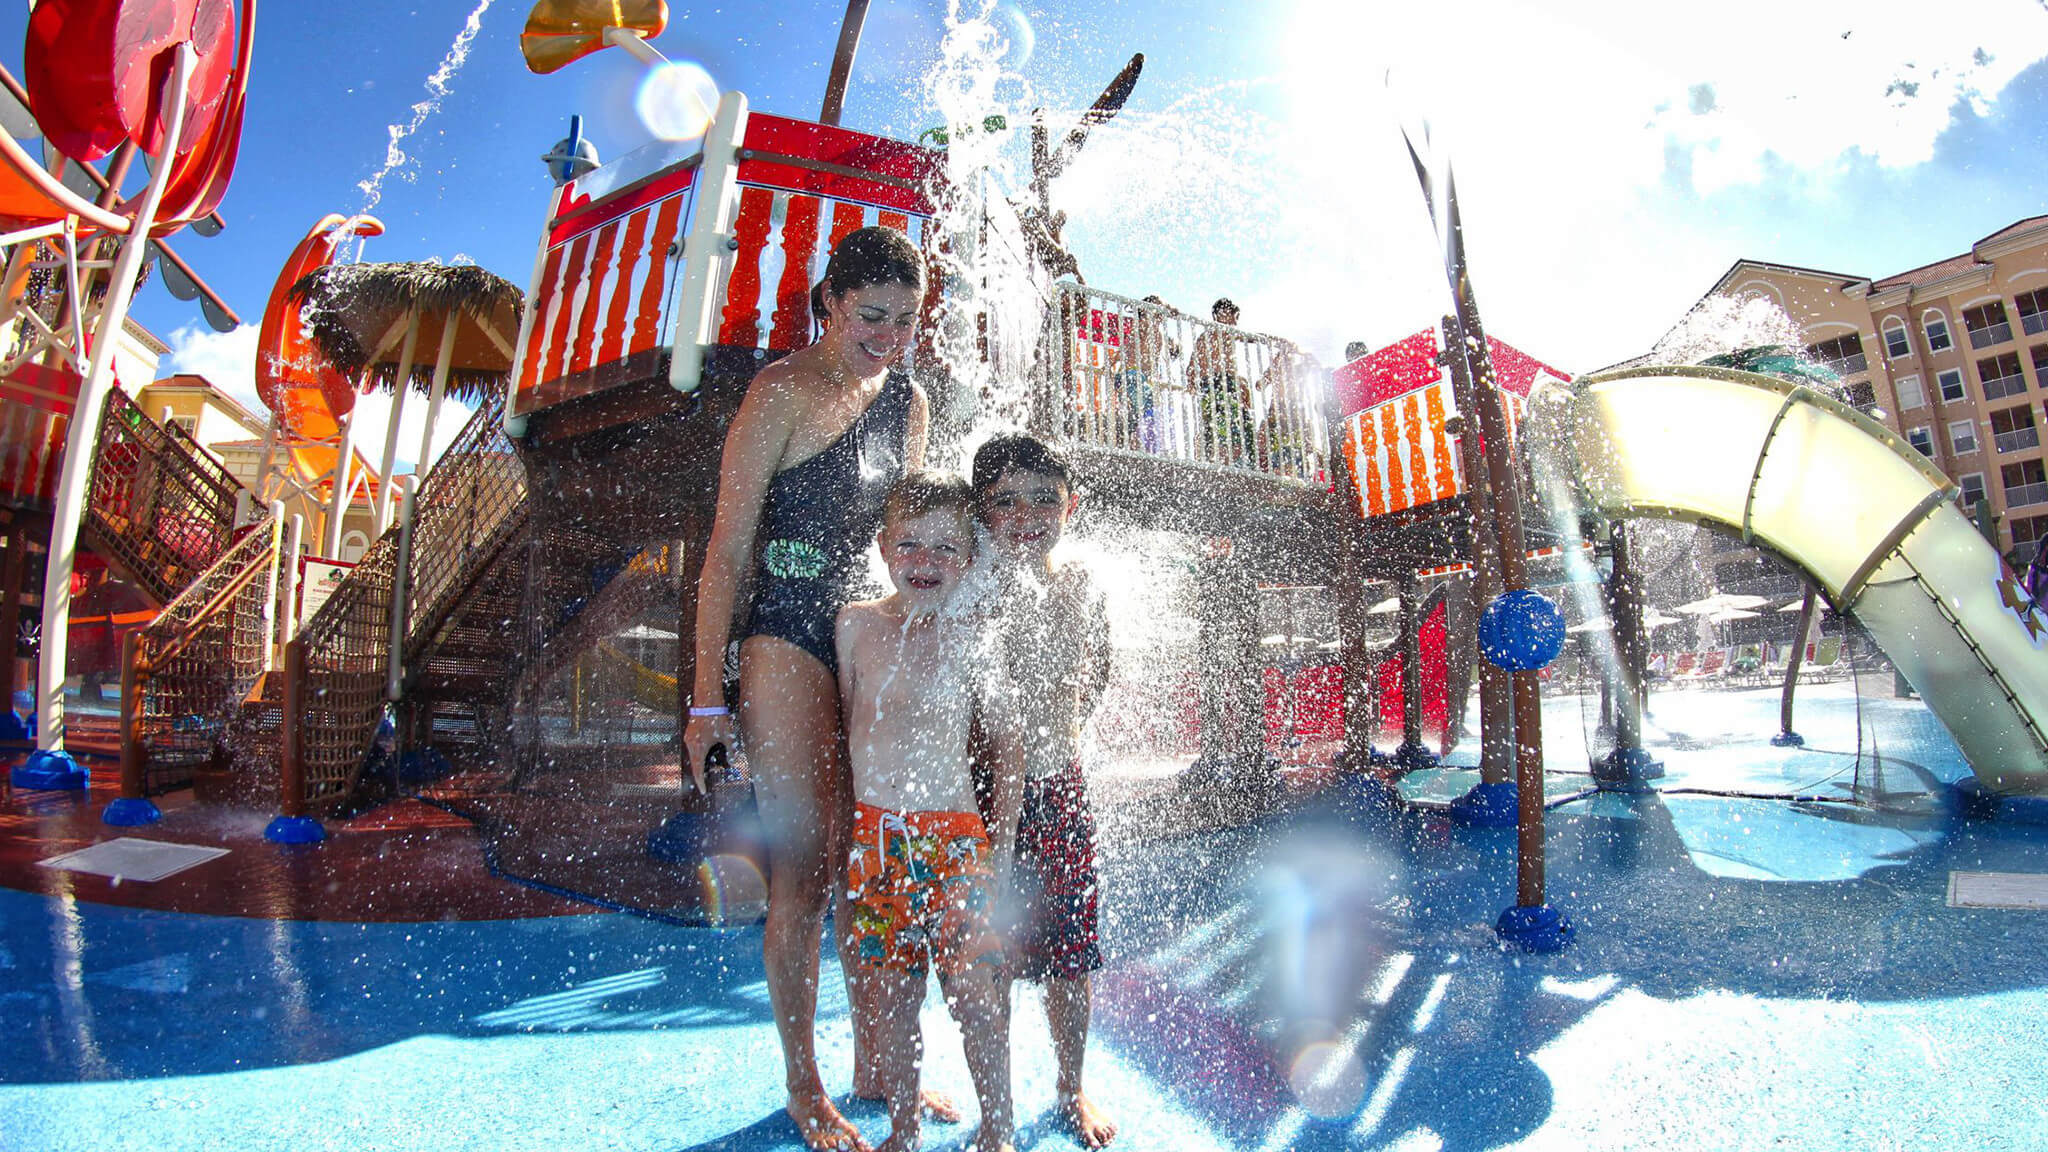 Family enjoys Splash Pad at Ship Wreck Island Water Park | Florida Vacation Villas in Kissimmee | Westgate Vacation Villas Resort & Spa